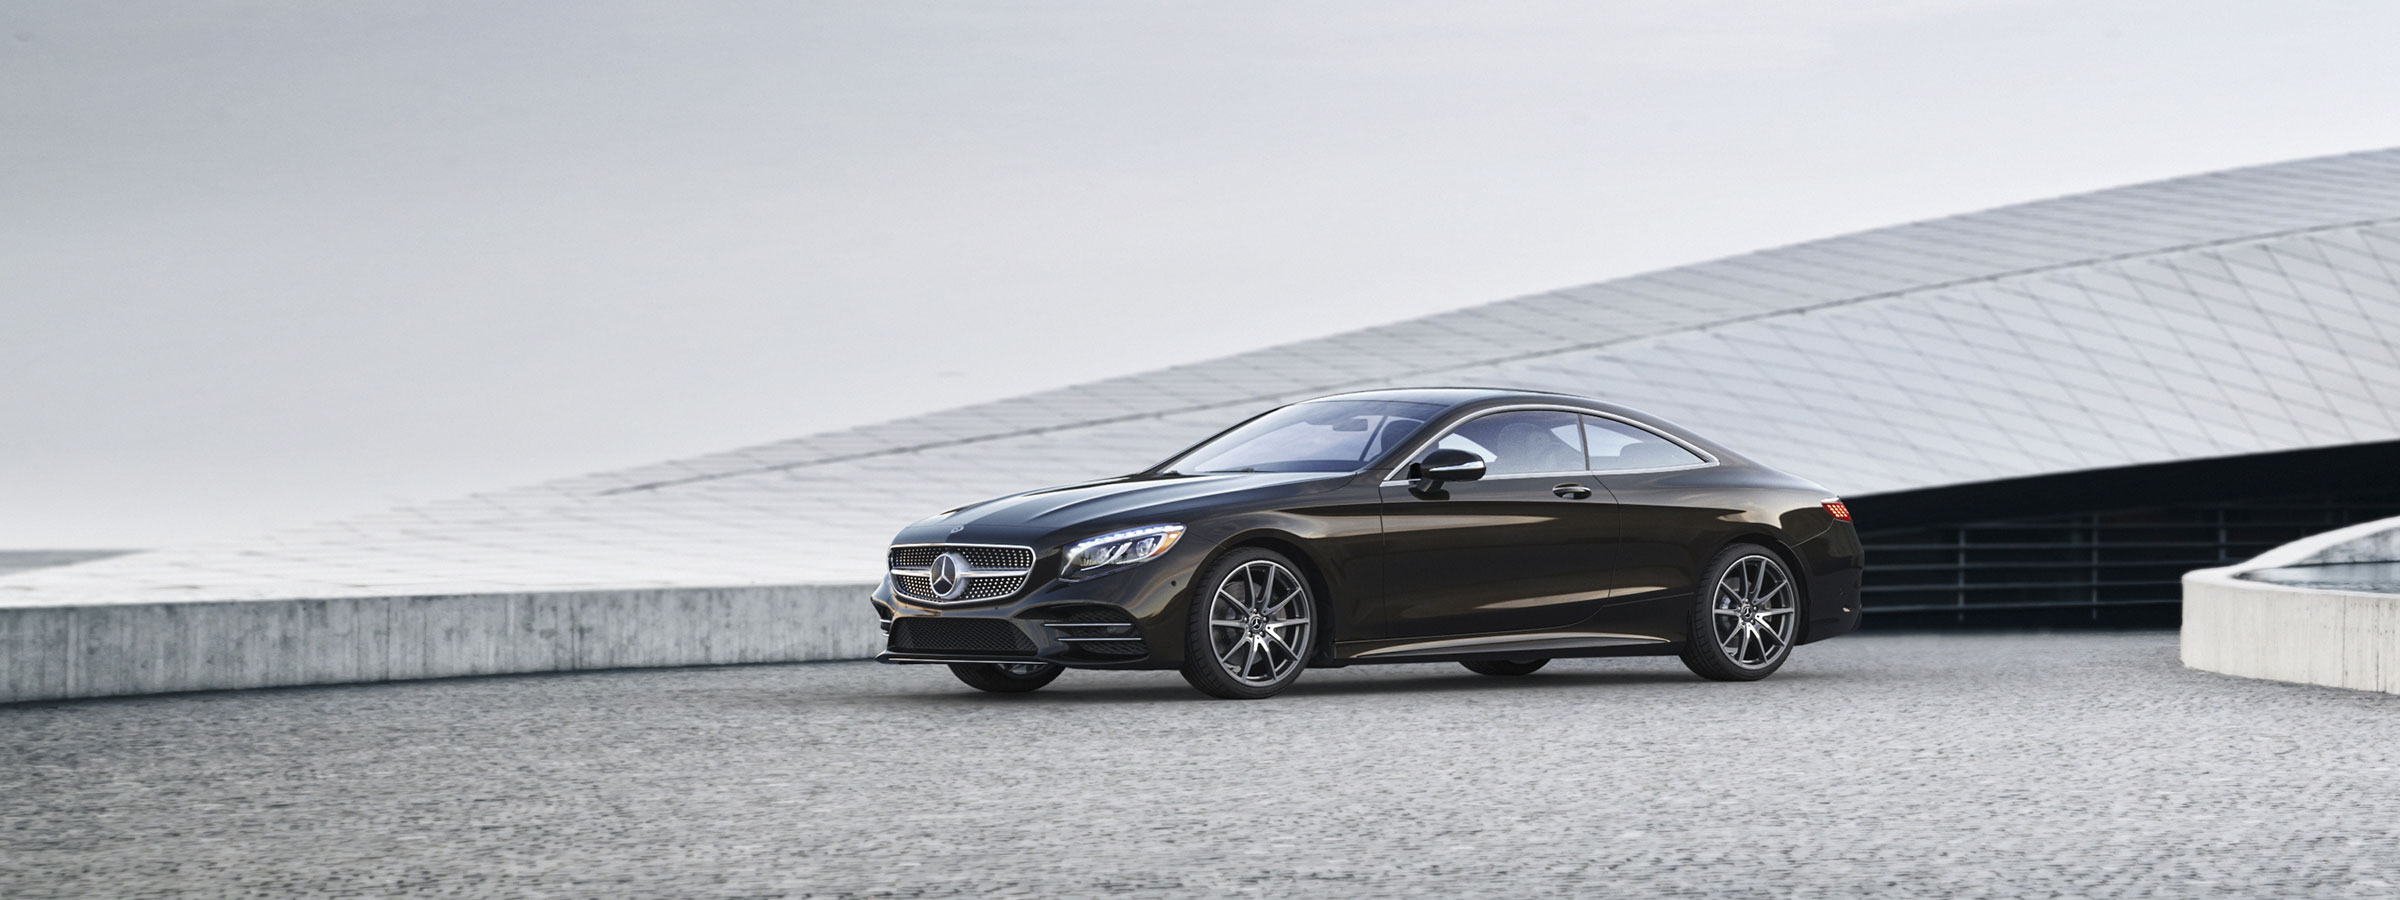 S-class Coupe Hero image